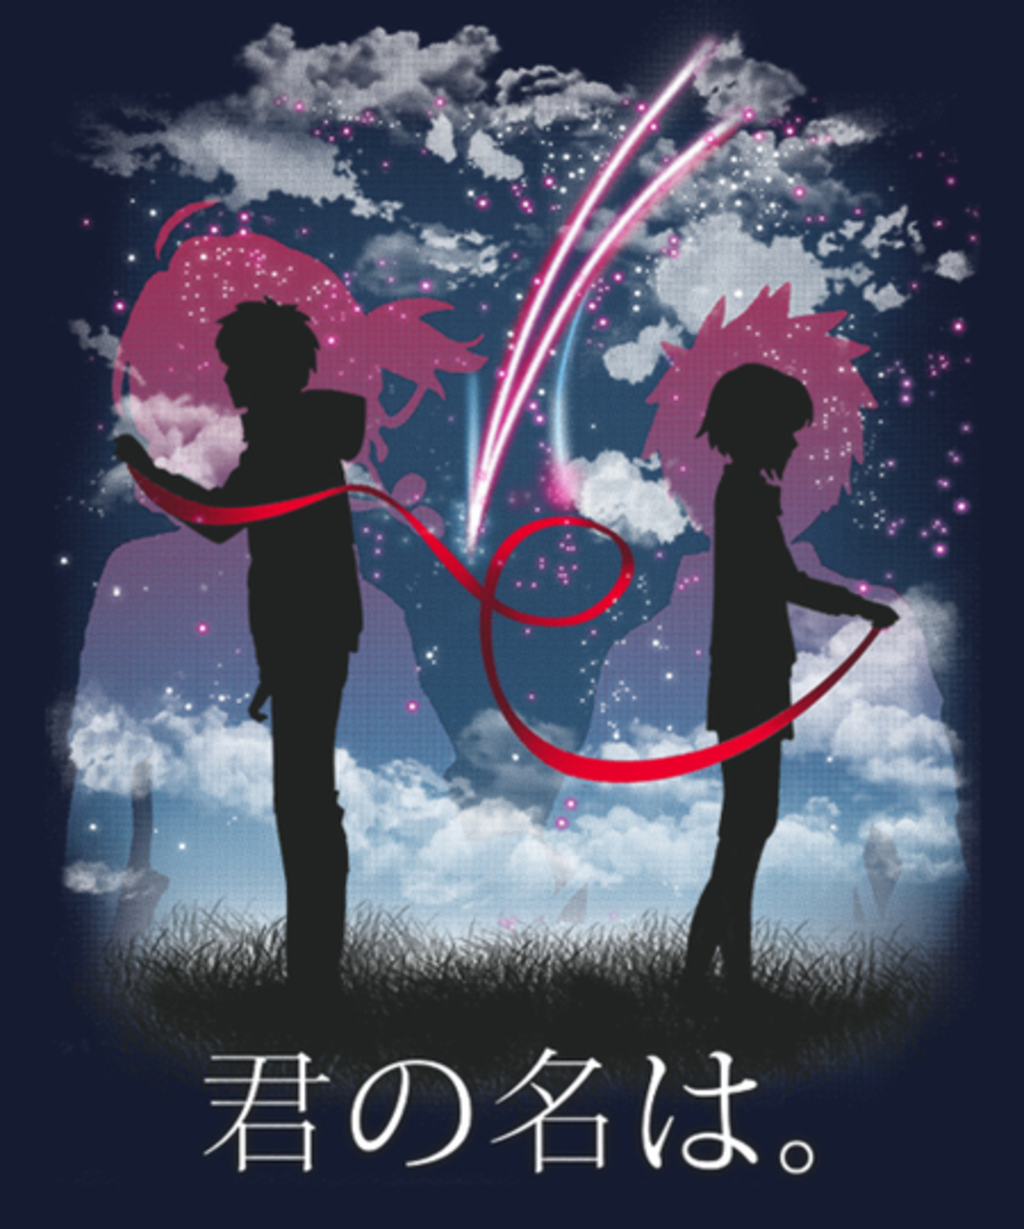 Qwertee: Your name